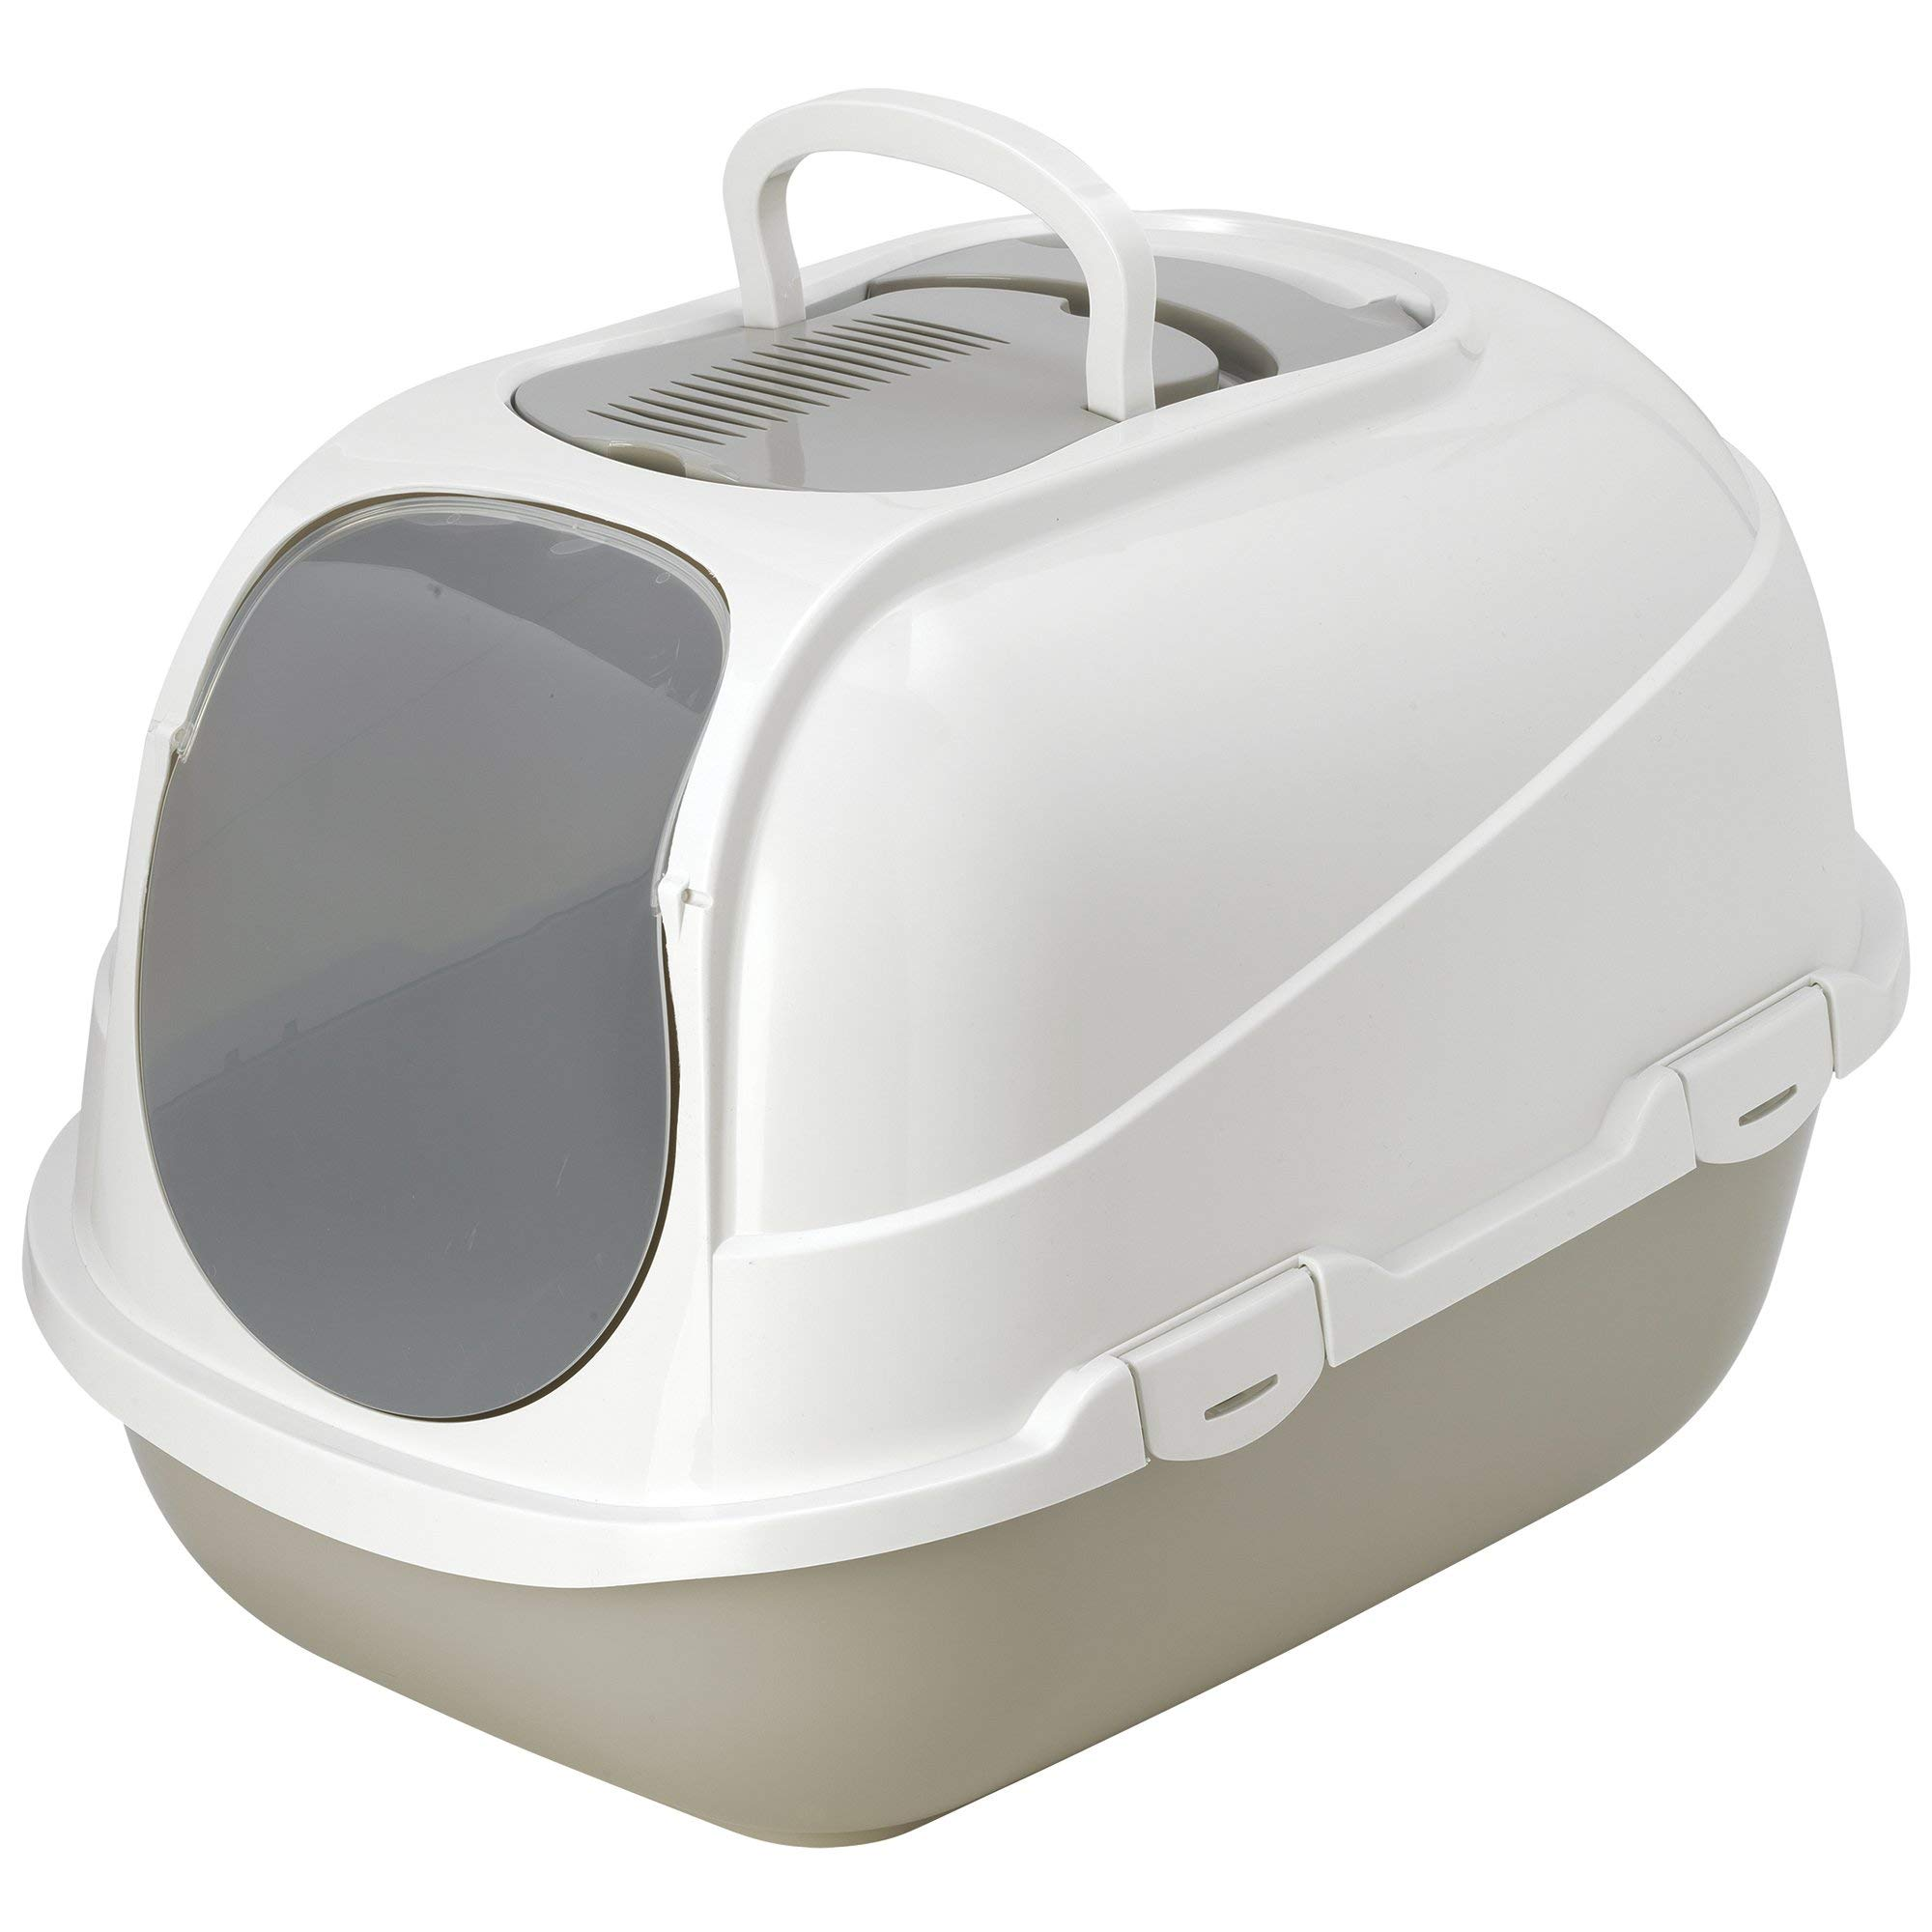 Moderna C270-0330 Multi Cats-Includes Liners Closed Litter Boxes by Moderna Products